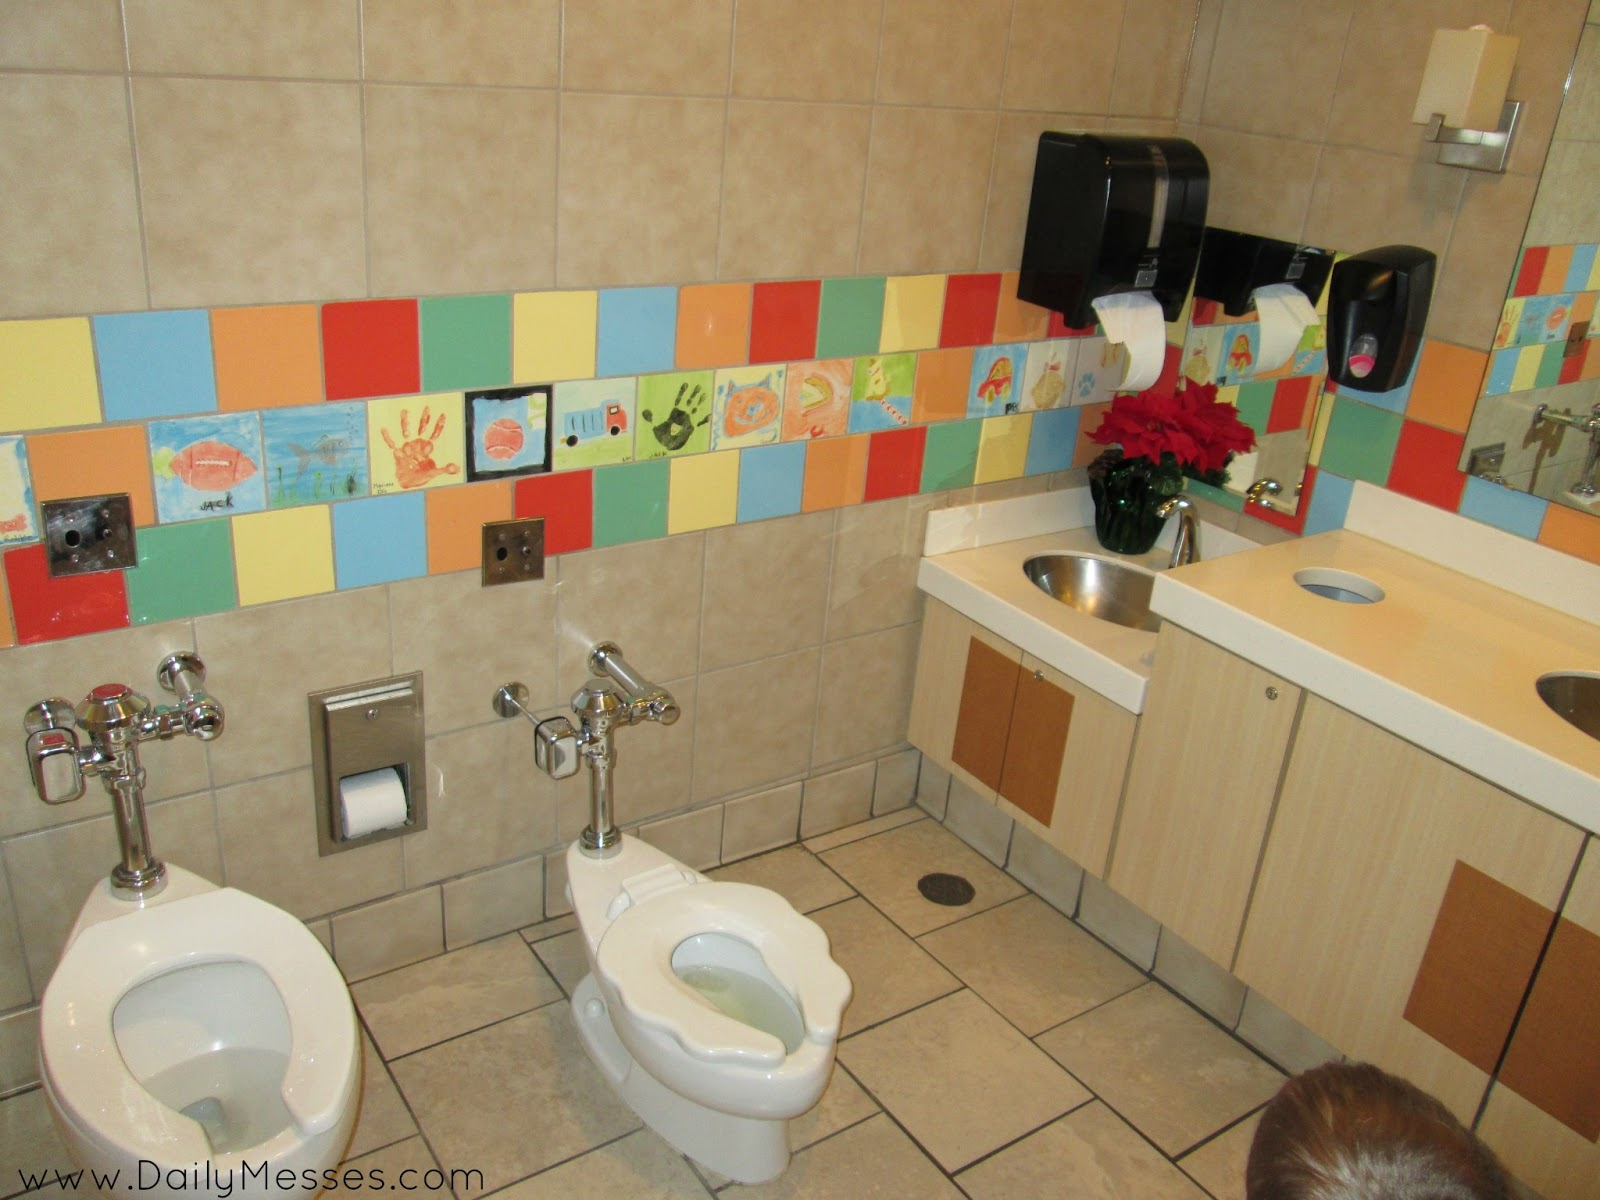 Gas Station Bathroom 28 Images I Will Be Free Gas Station Restrooms Pin By Chandelier On El